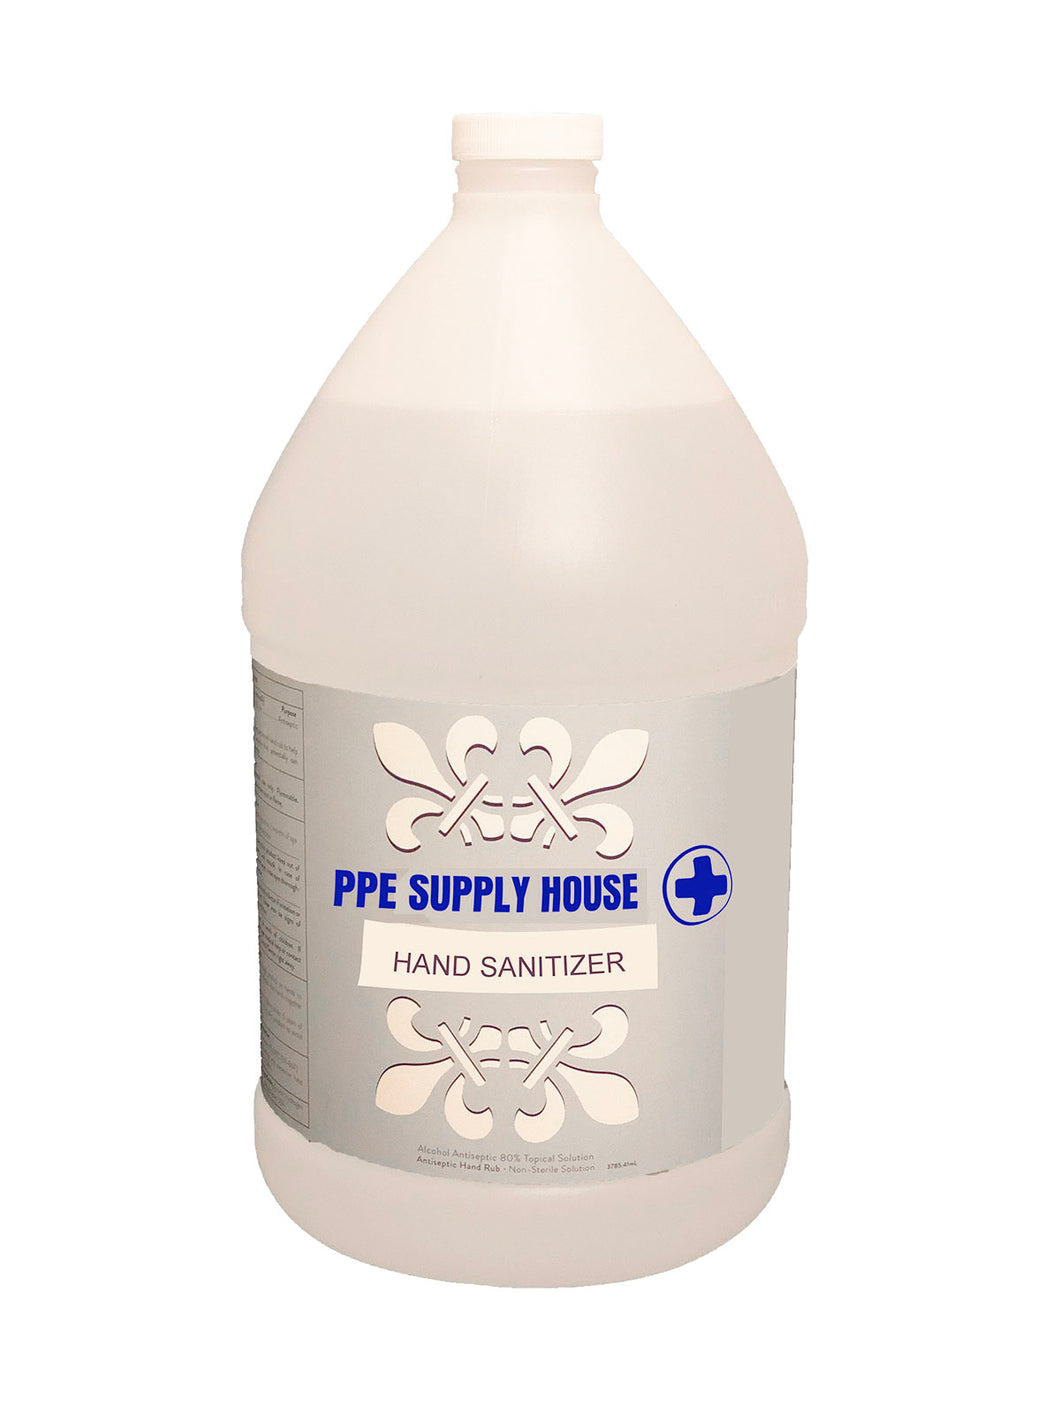 1 GALLON LIQUID HAND SANITIZER  (GALLON BOTTLES)   -  MADE IN USA!